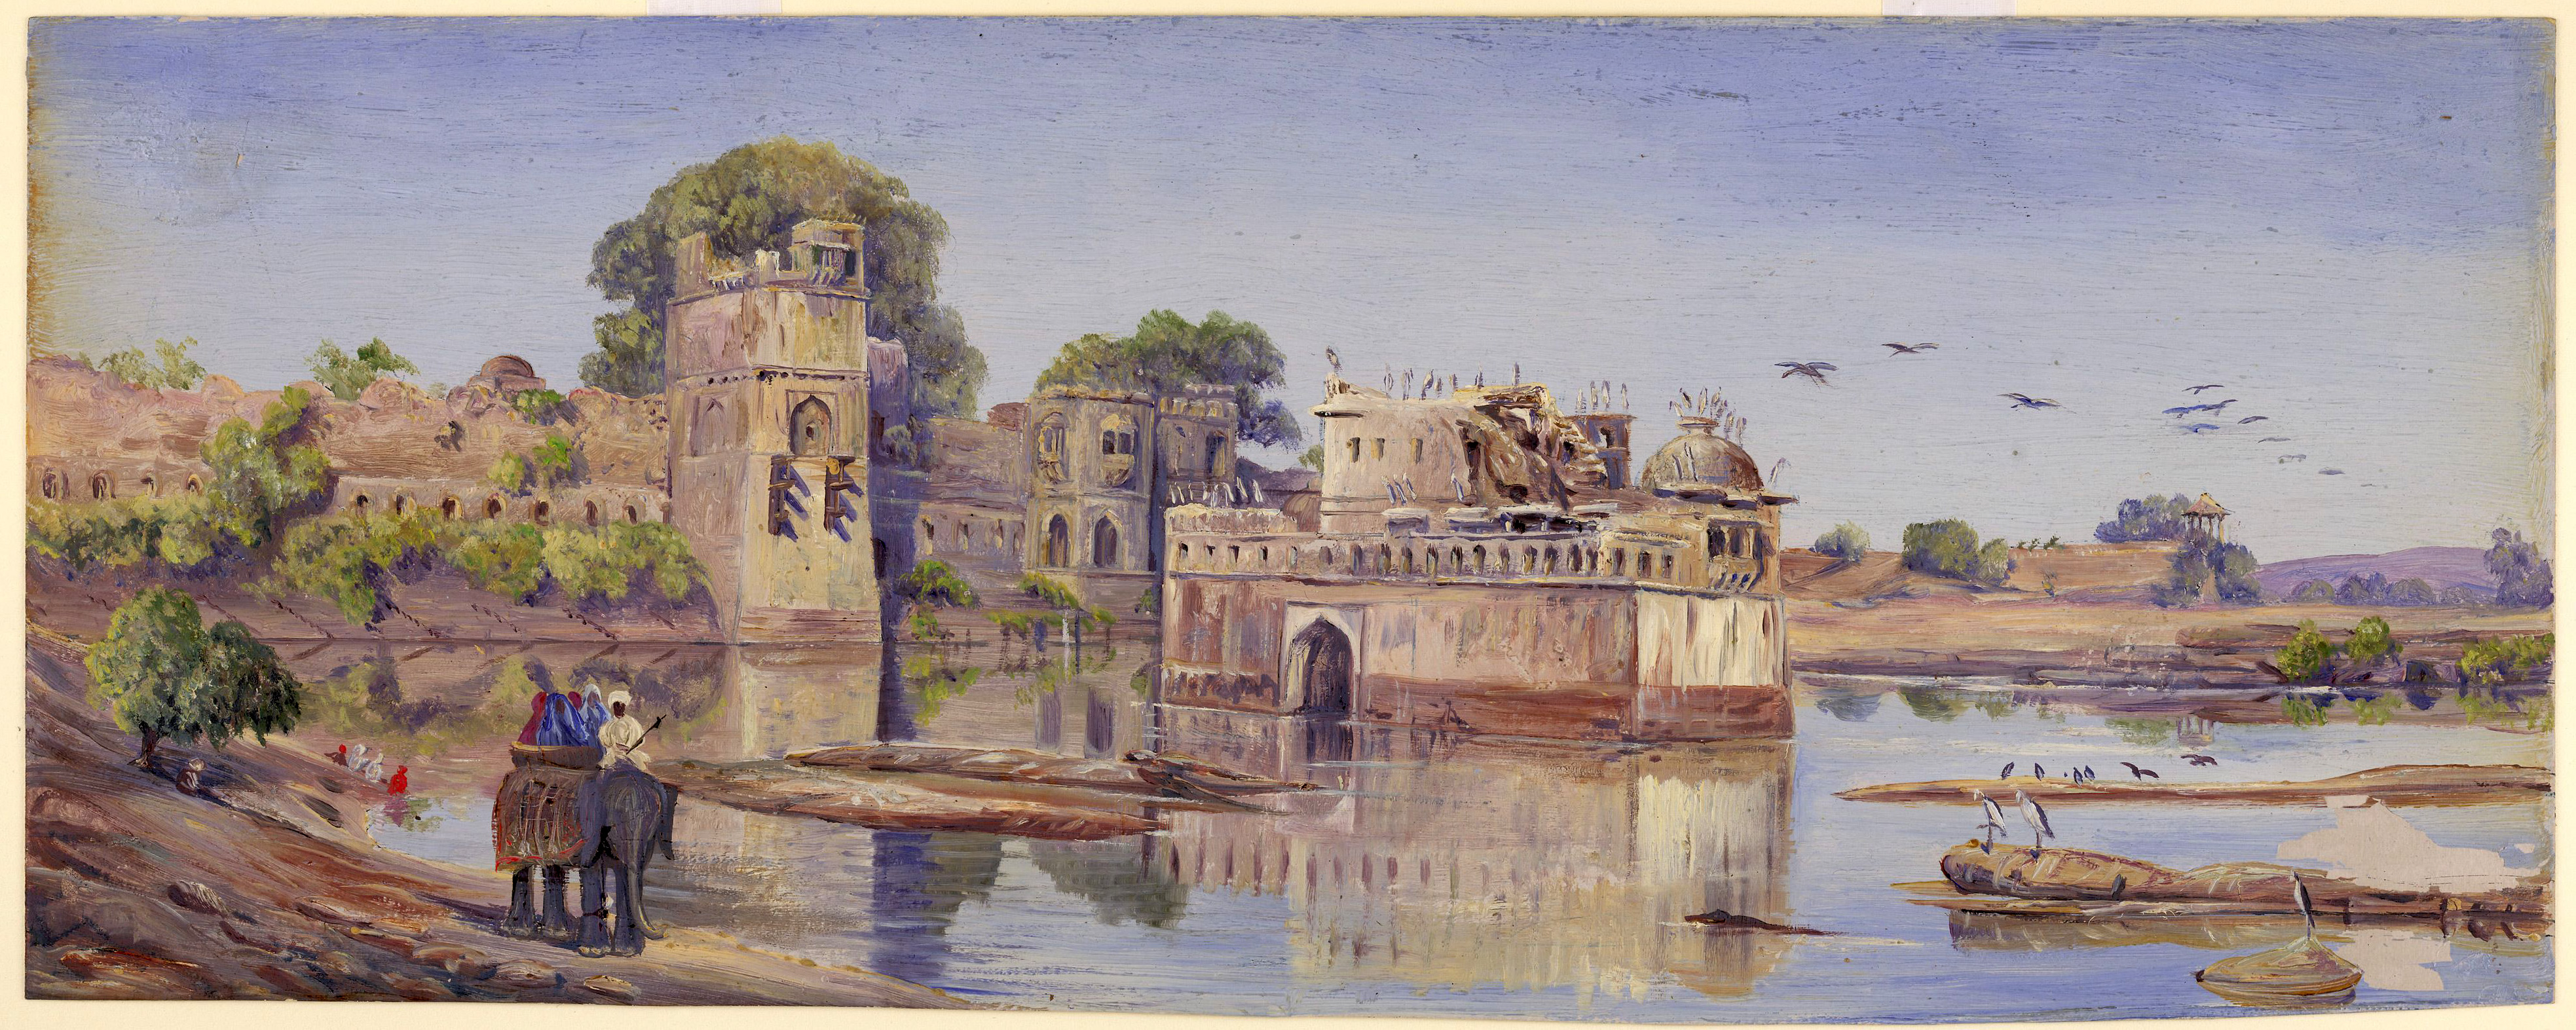 File Oil painting of Padmini's palace in the fort in the midst of the  tank.jpg ca9ecc2eb522